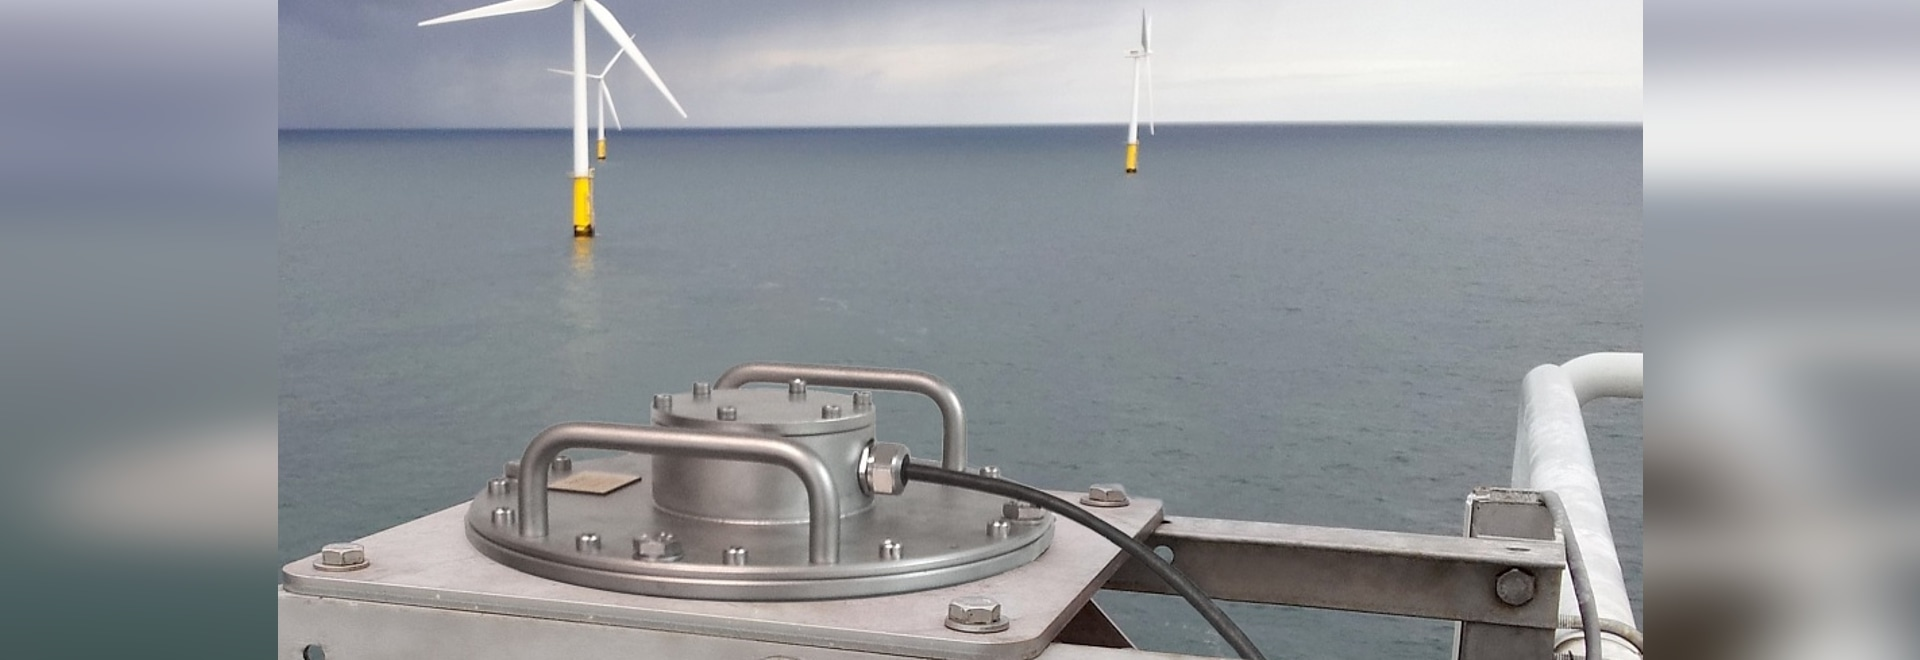 Planet Ocean provided a version of its DBT-3 cell phone based telemetry system